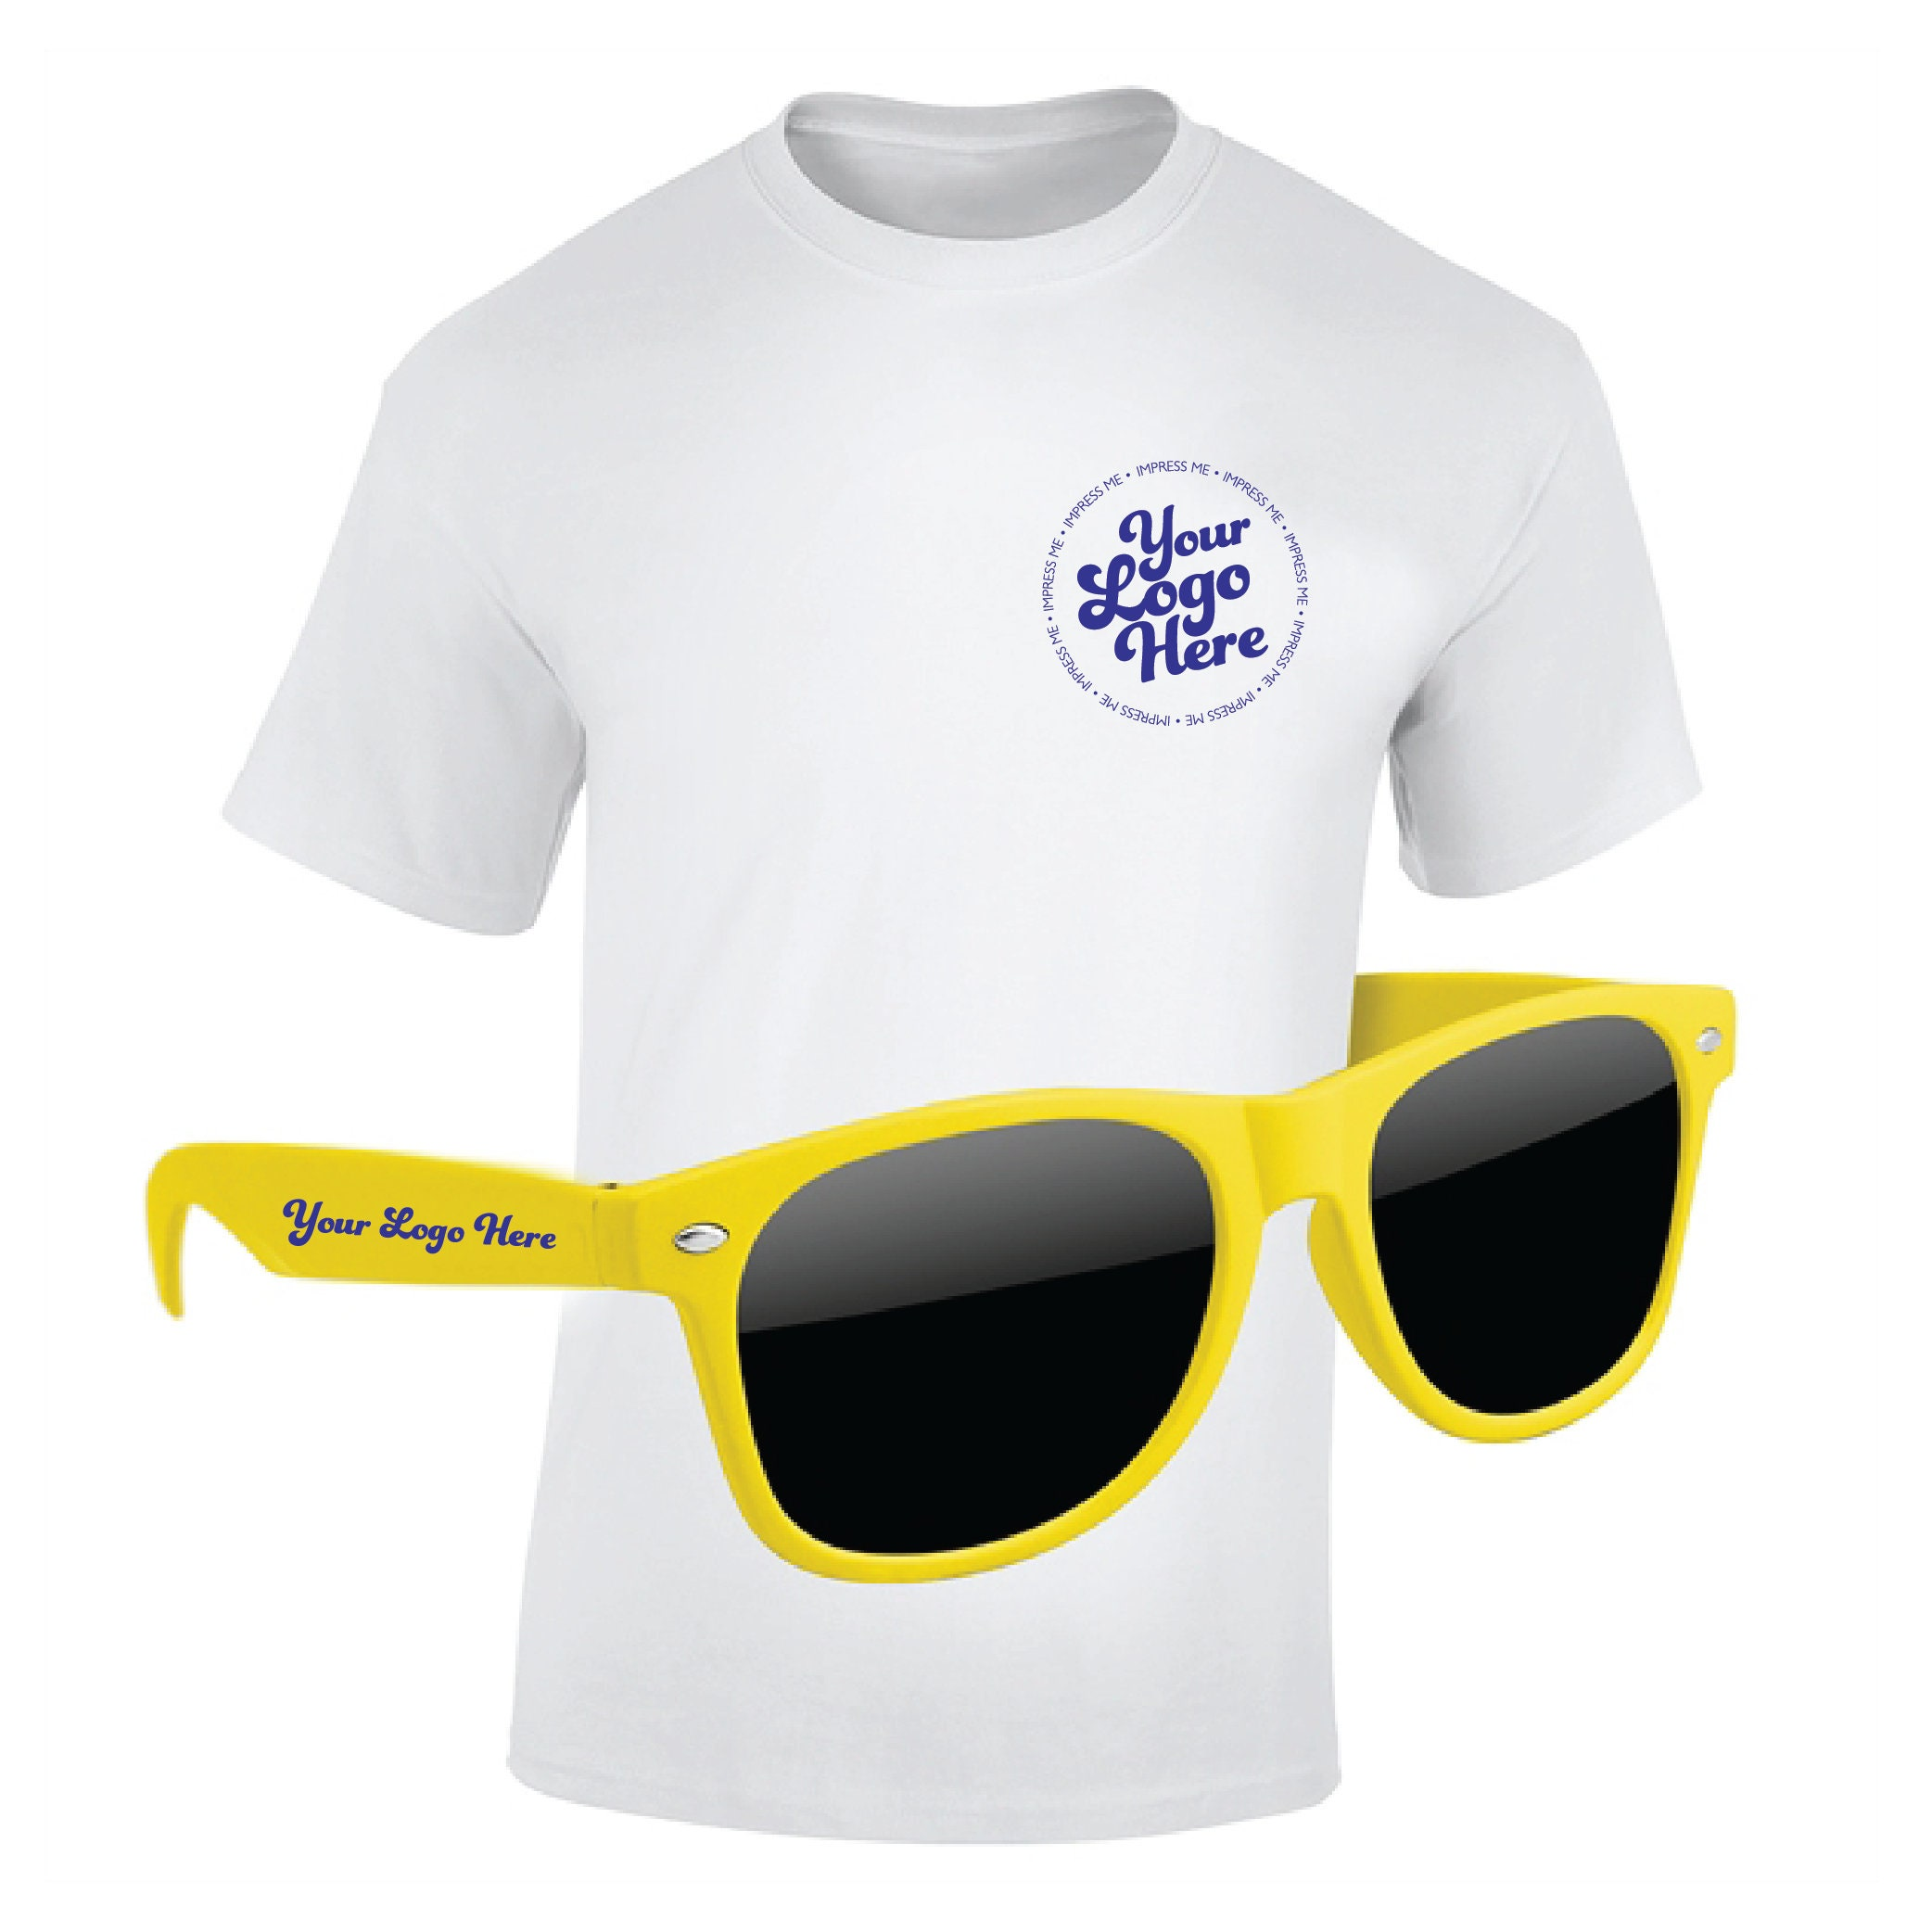 Full Color T Shirts Sunglasses Party Favors Gift Bags Etsy